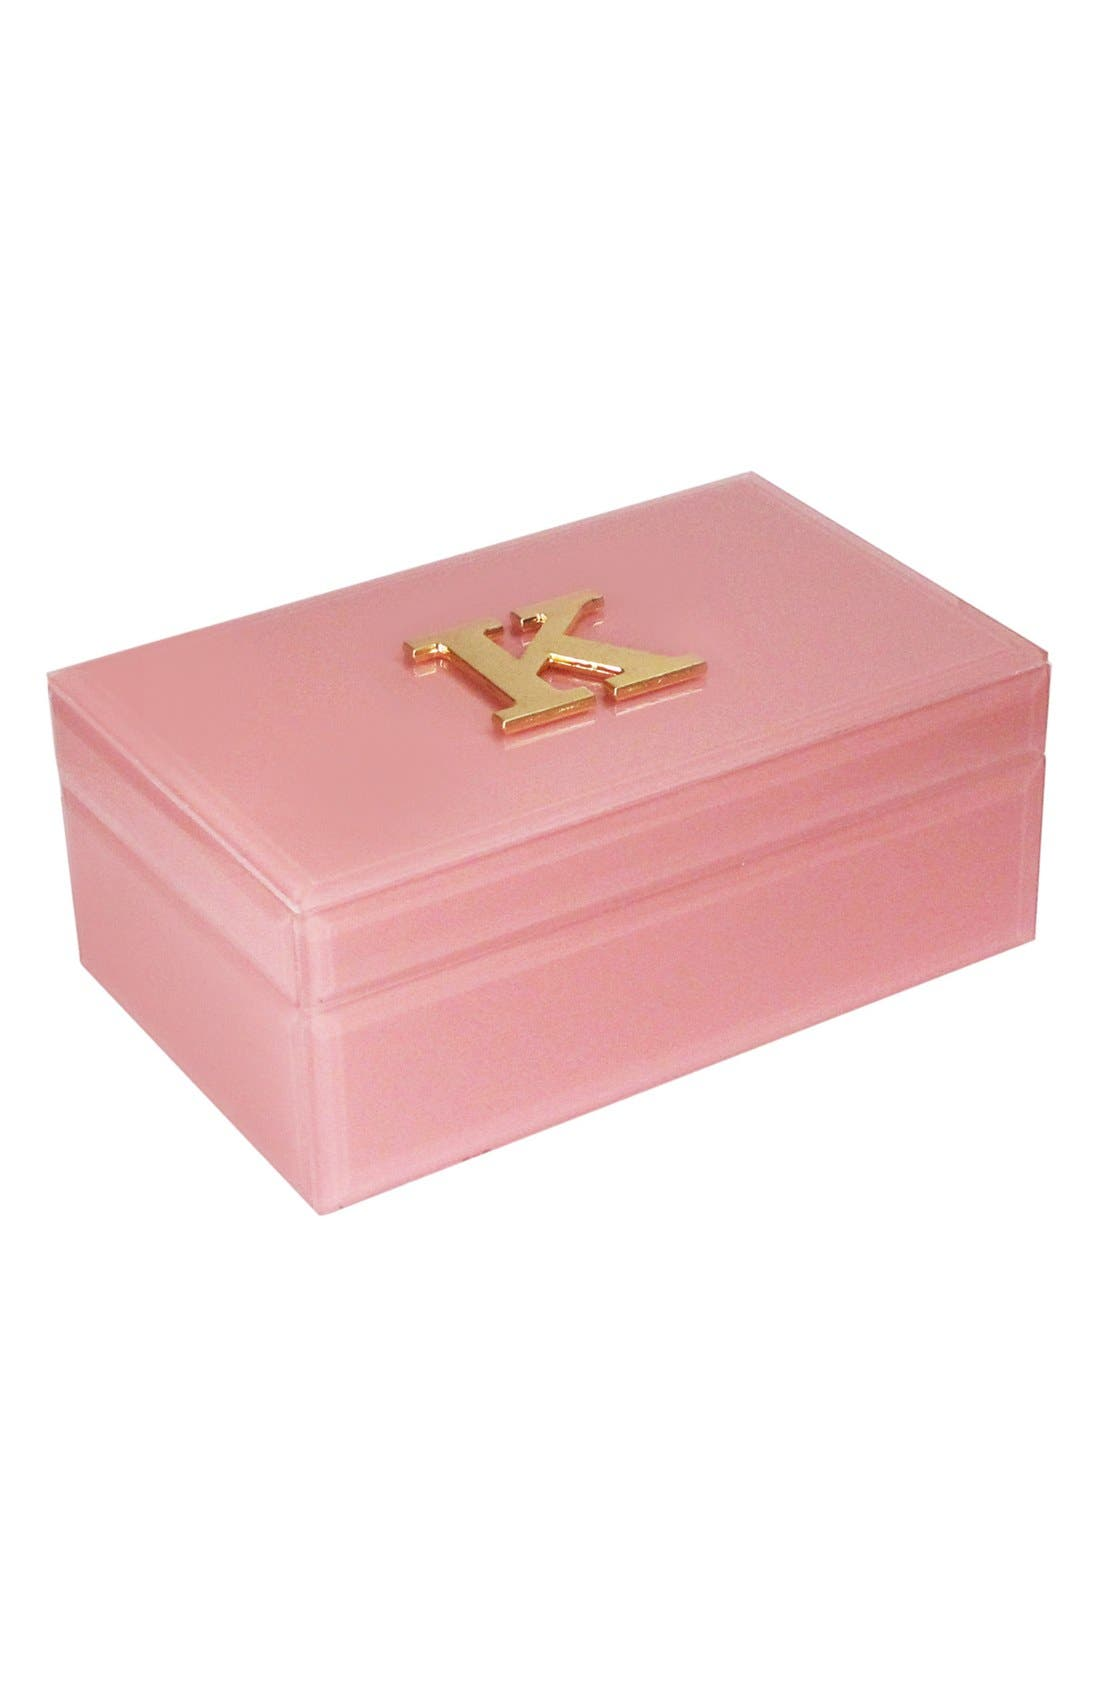 Main Image - American Atelier Monogram Jewelry Box